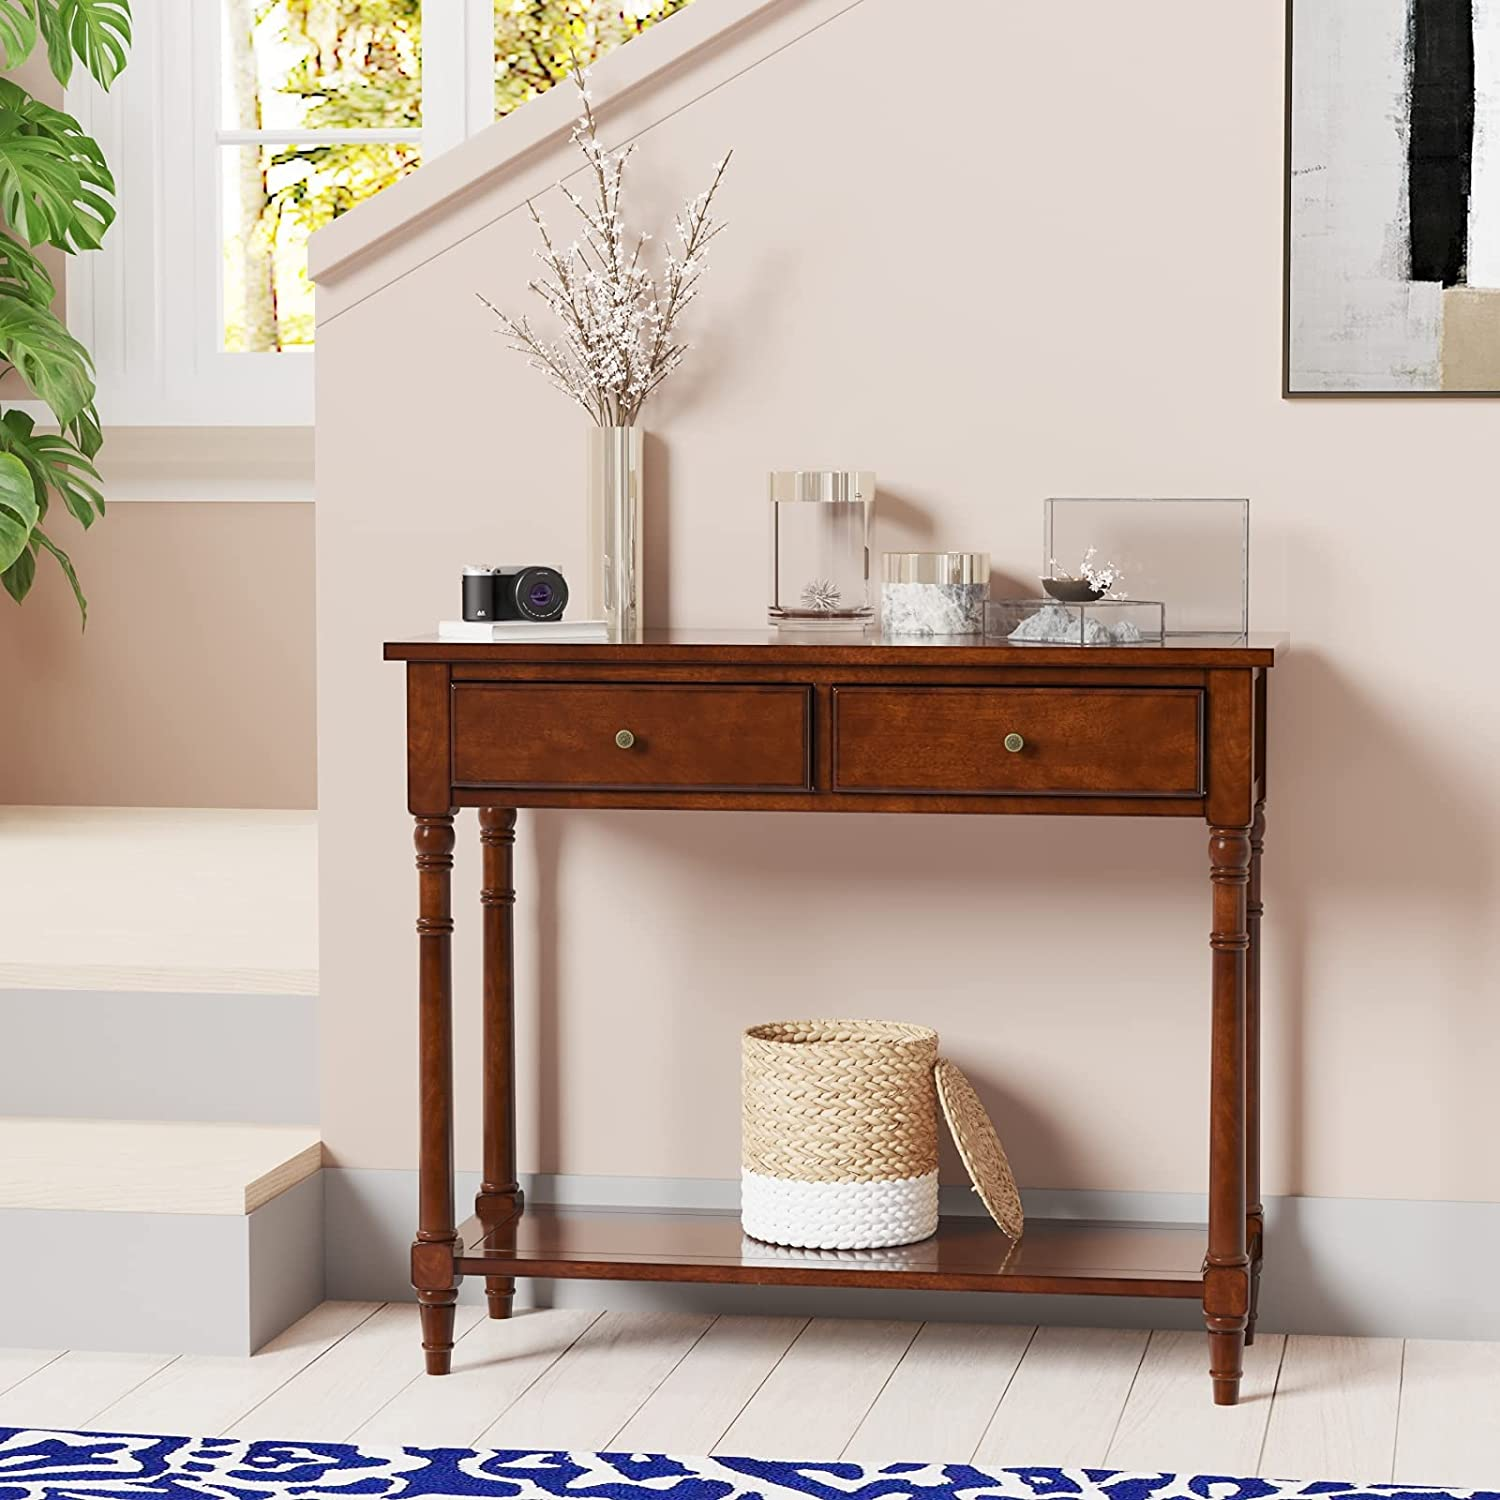 Solid Wood Sofa Table Modern Entryway Narrow Popular brand C for Console Seattle Mall